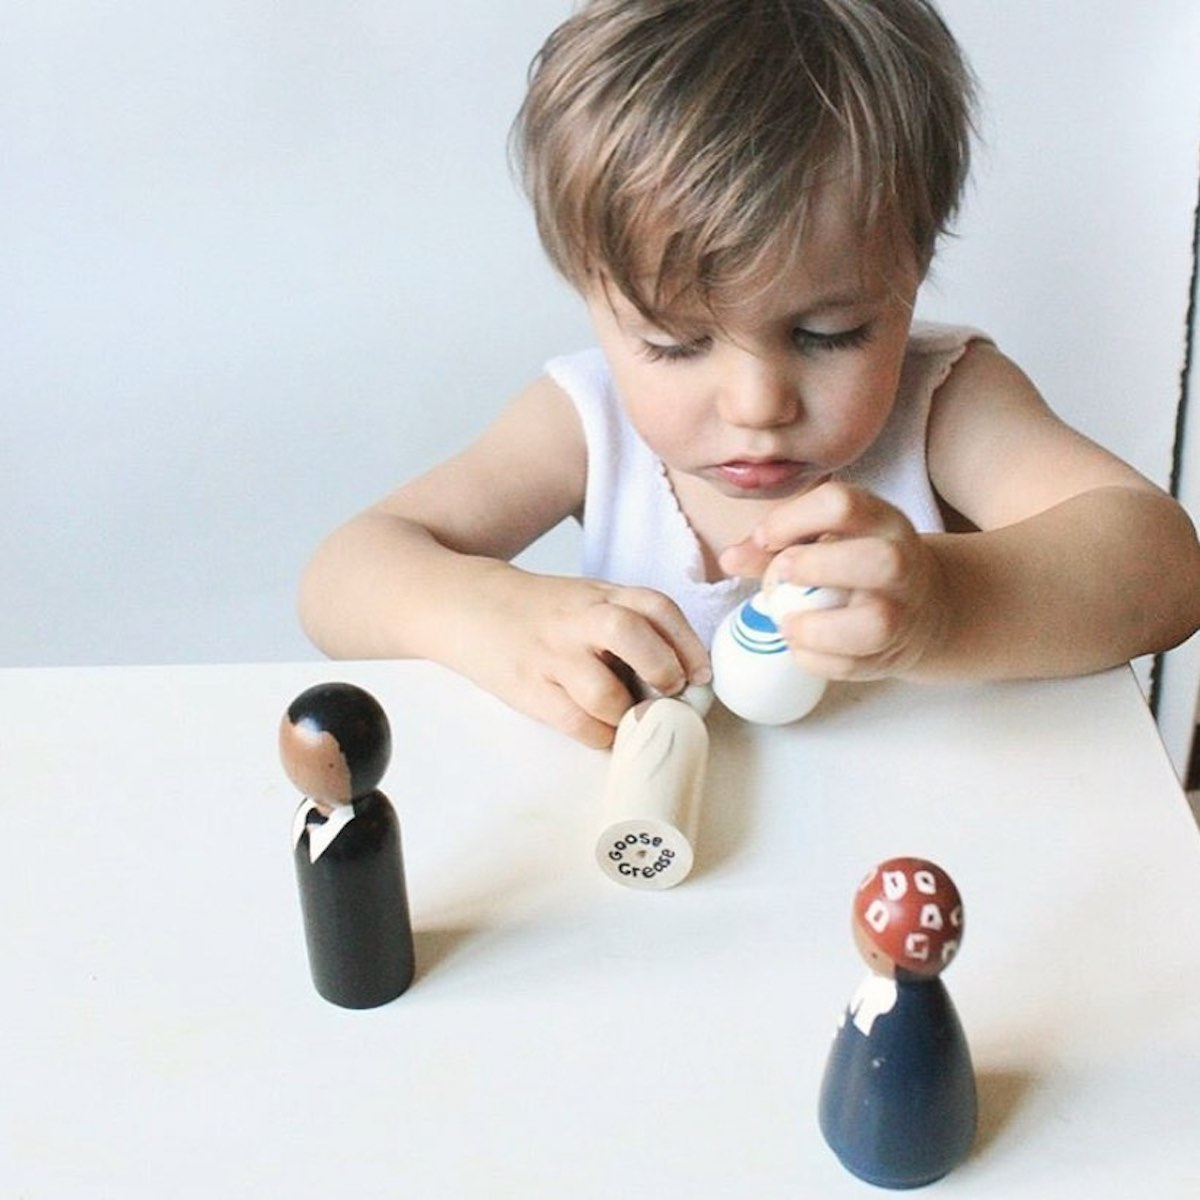 A toddler playing with Goose Grease handmade peg dolls